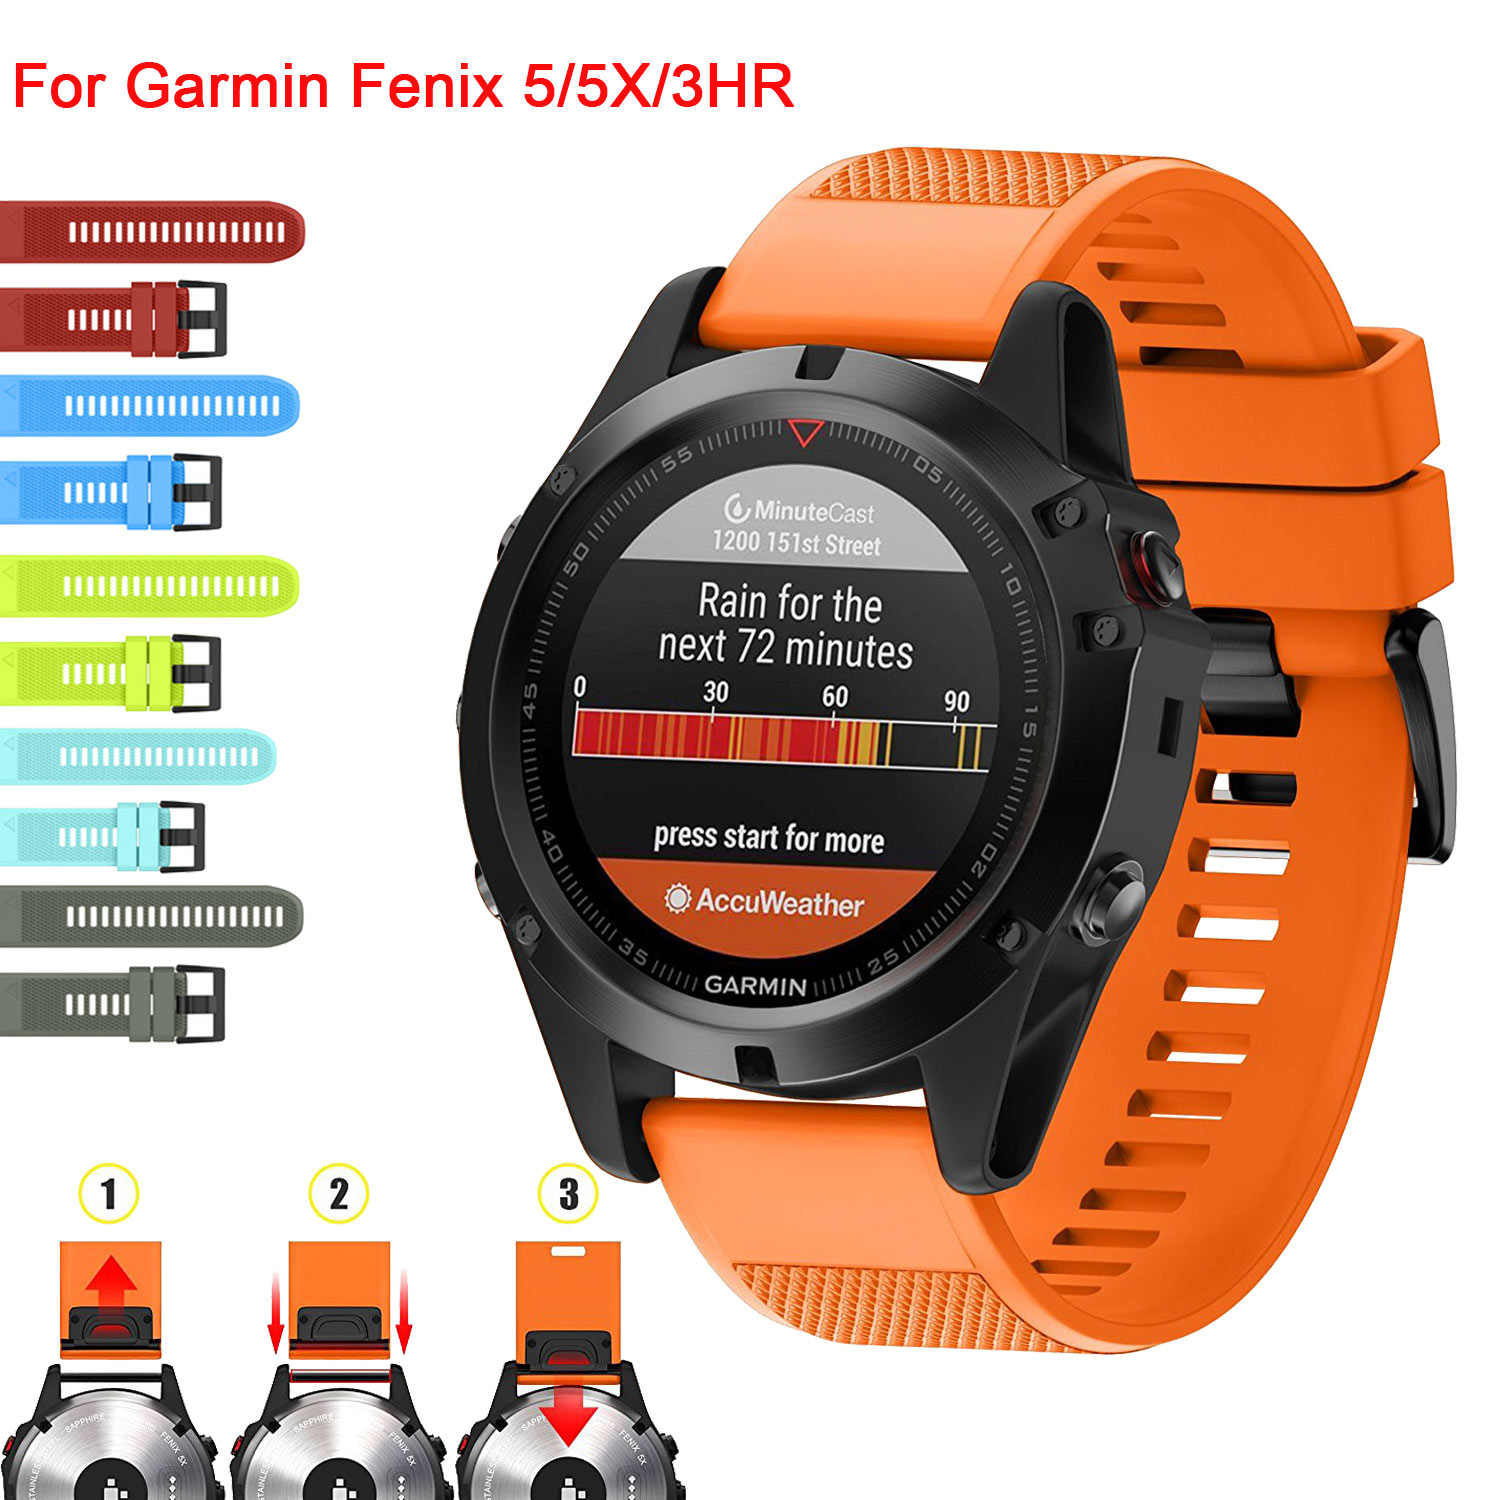 26 22 20MM Watchband Strap For Garmin Fenix 5X 5 5S Plus 3 3HR D2 S60 Watch Quick Release Silicone Easyfit Wrist Band Strap